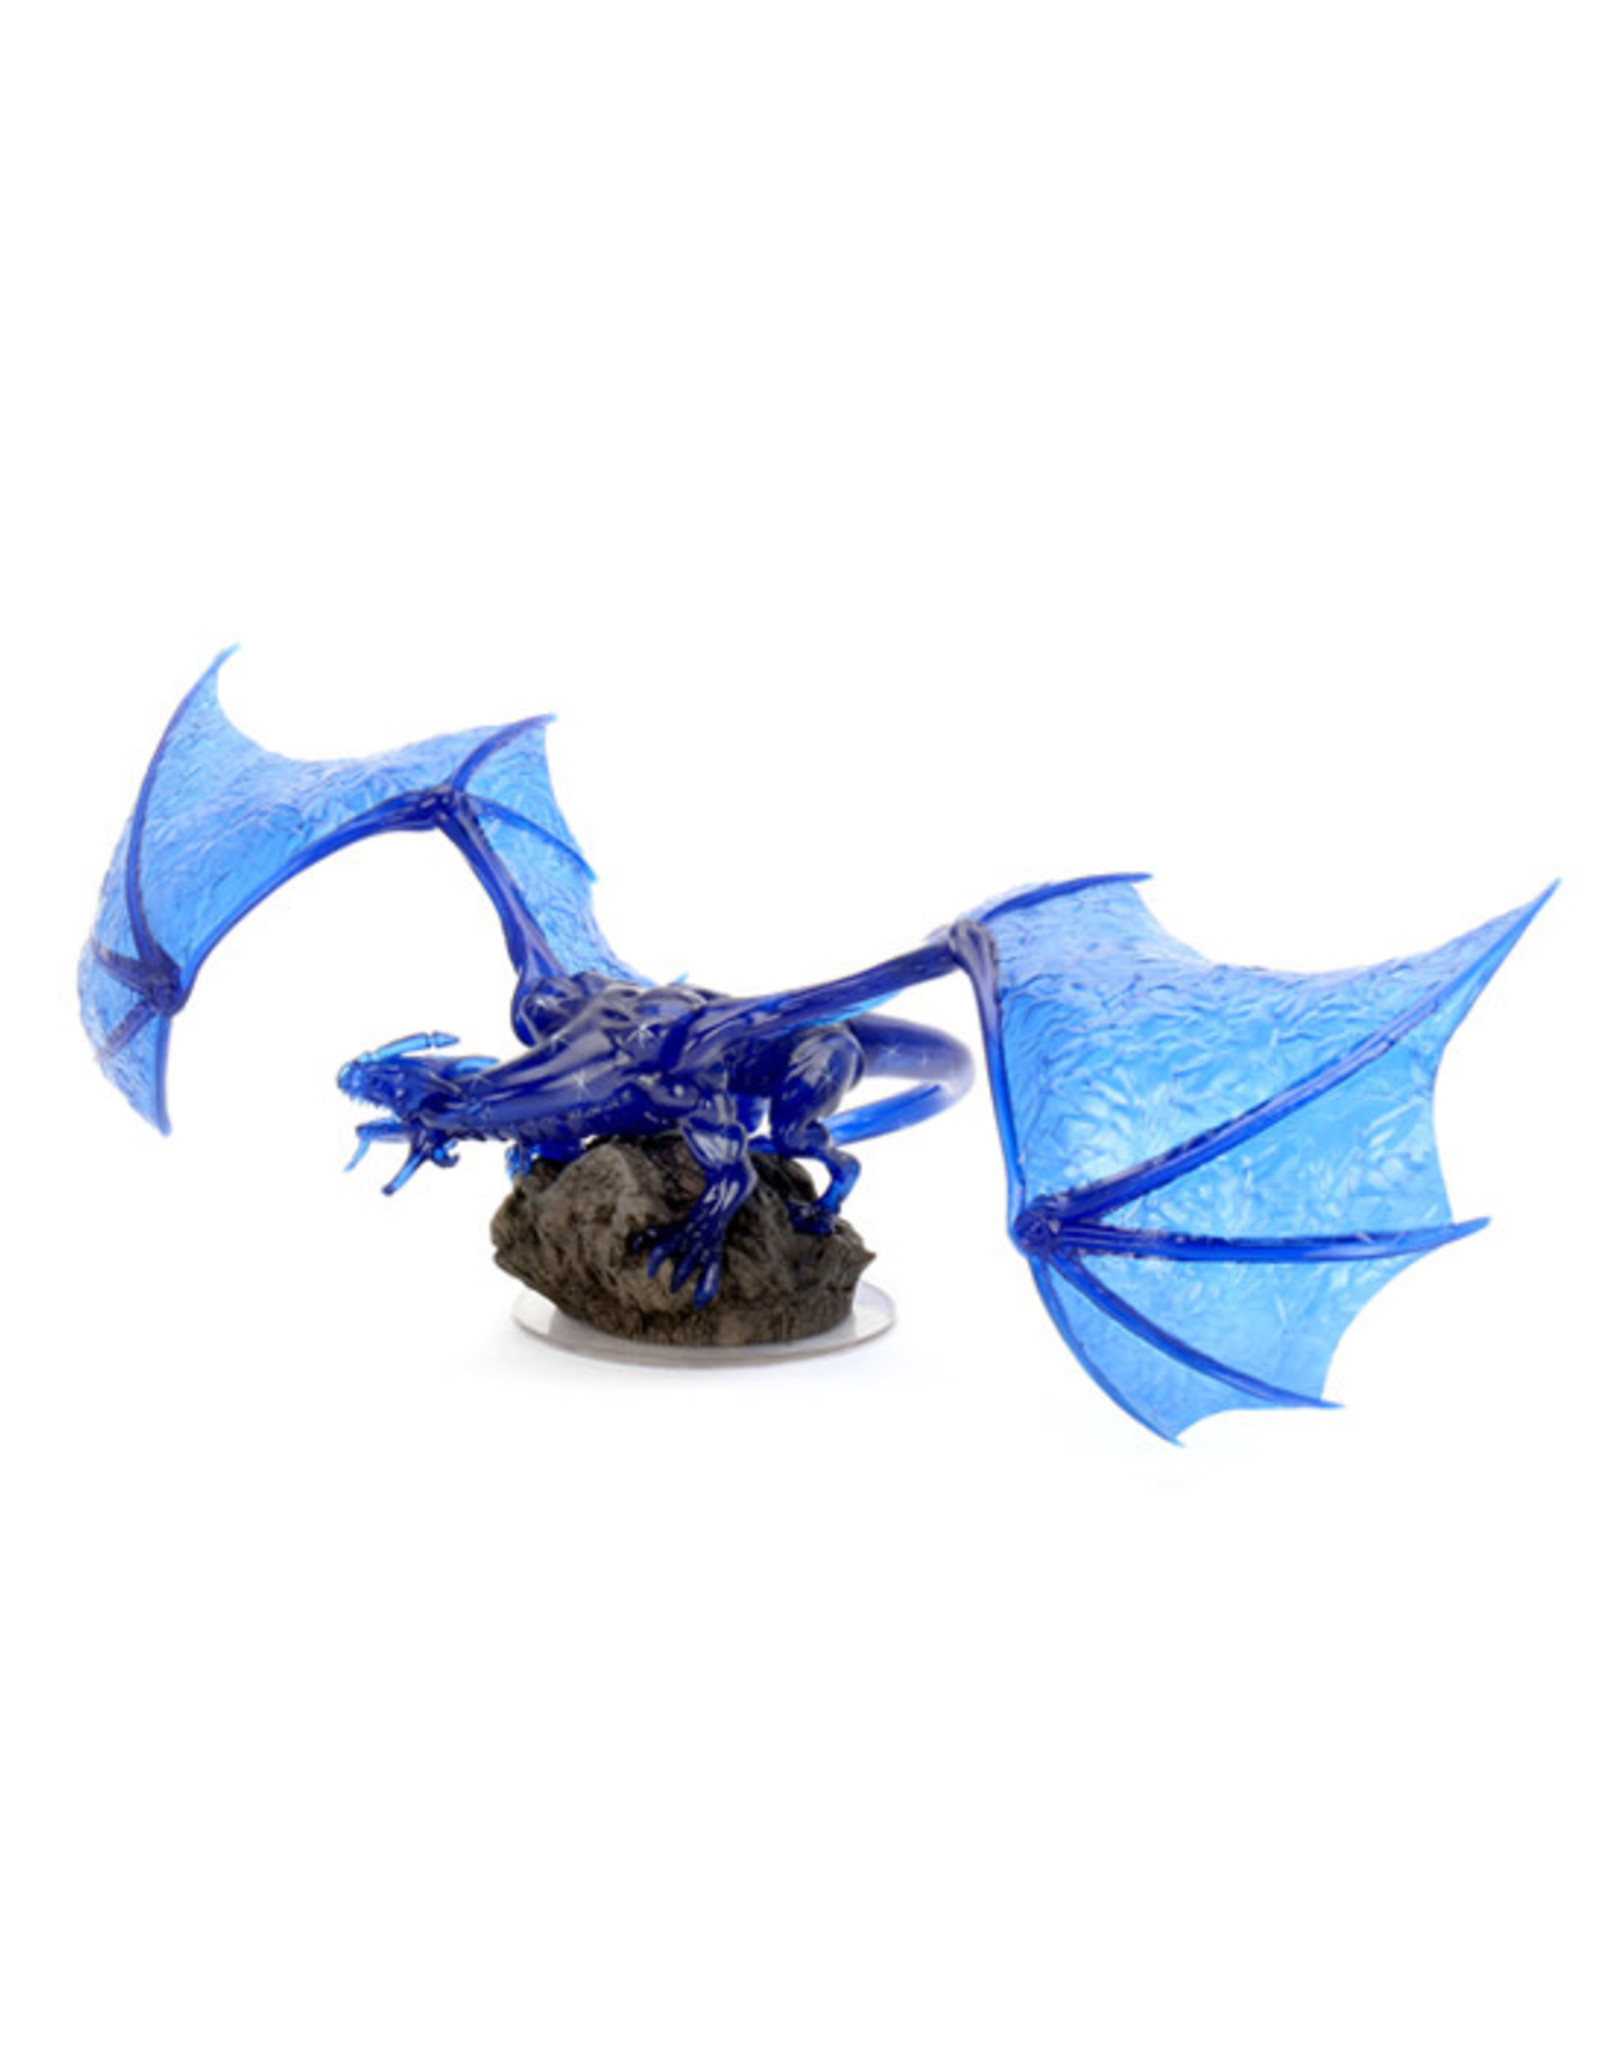 Dungeons & Dragons Dungeons & Dragons: Icons of the Realms - Premium Figure - Sapphire Dragon